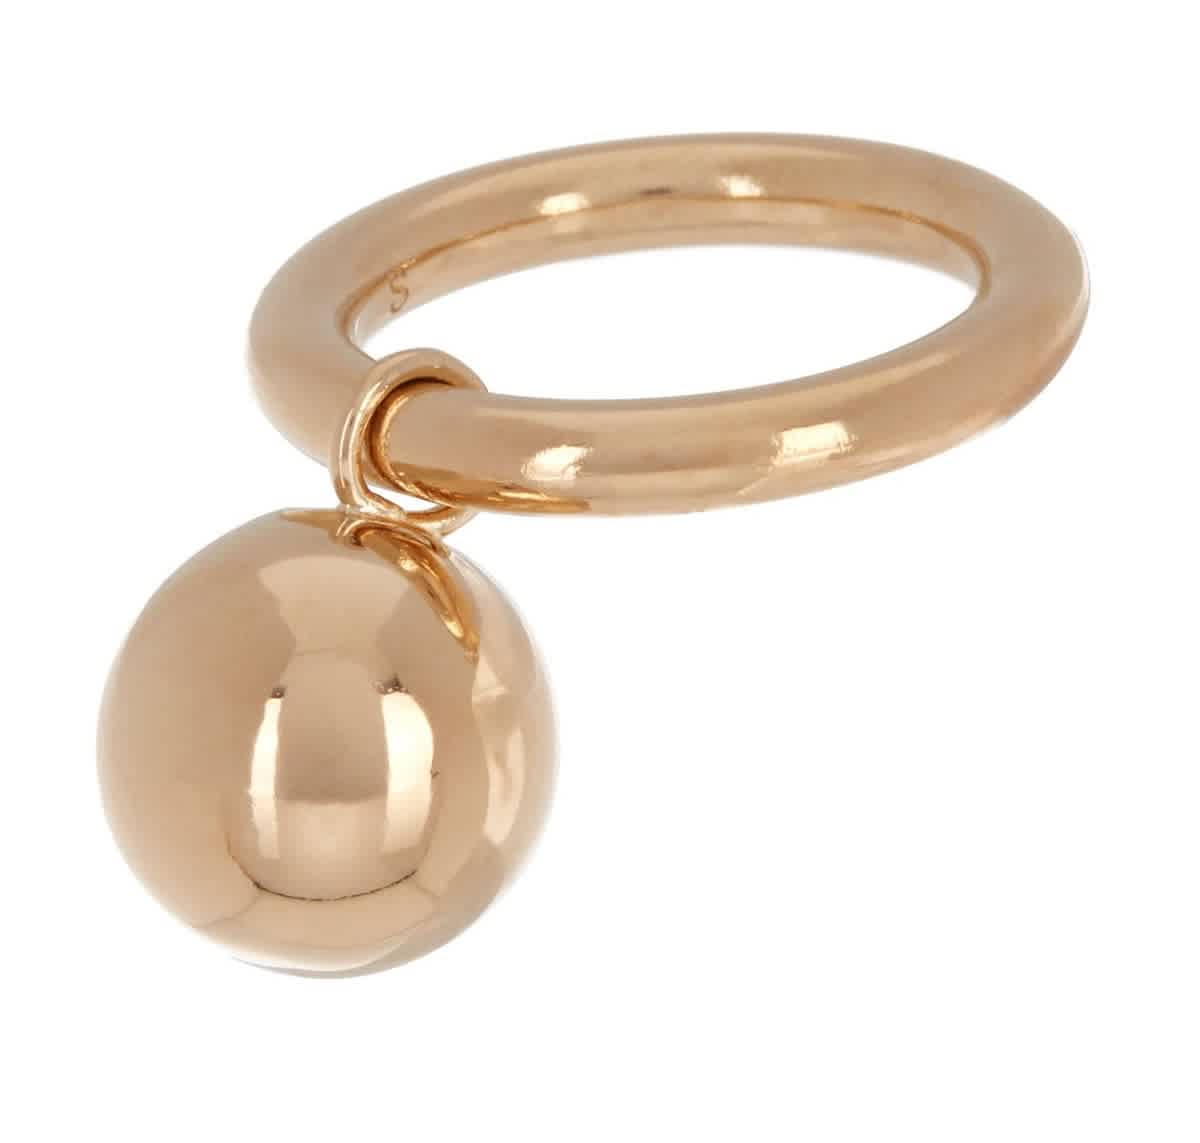 Burberry Ladies Round Charm Gold-plated Ring In Brown,gold Tone